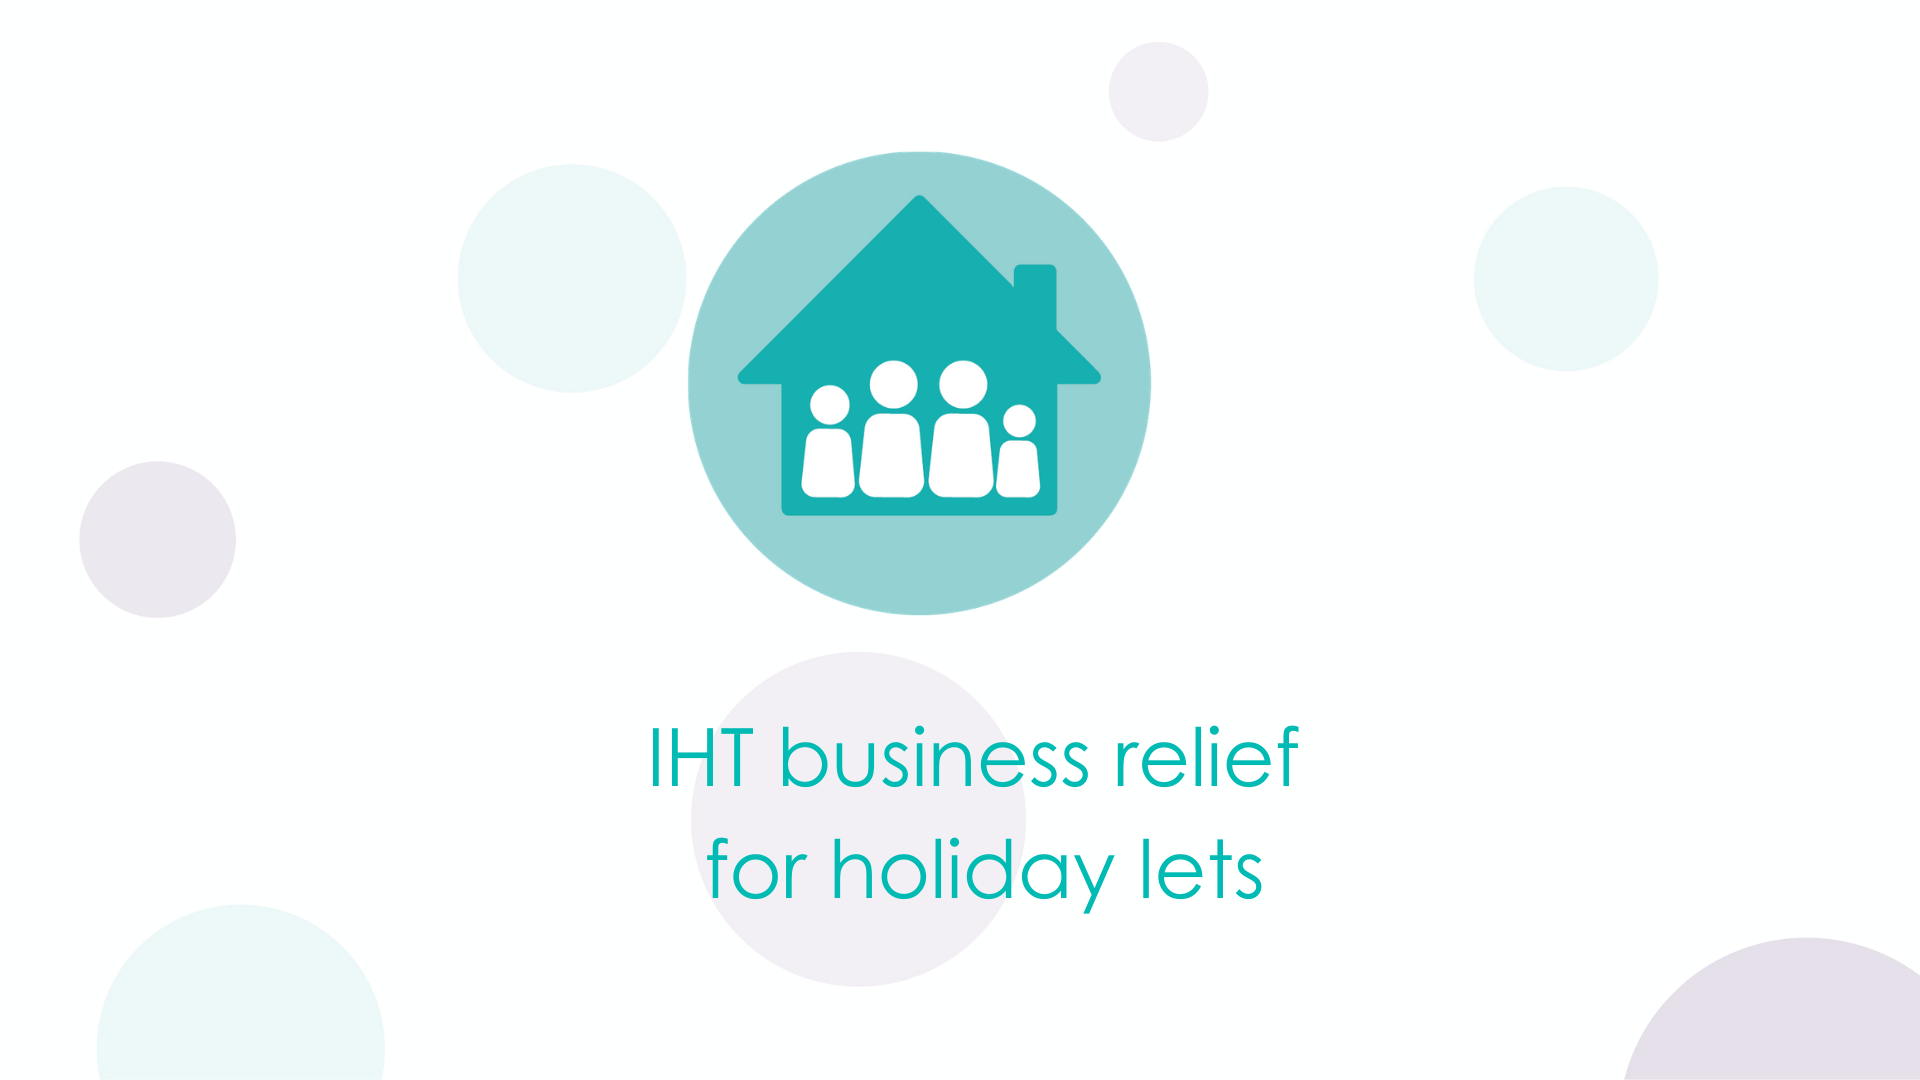 IHT business relief for holiday lets